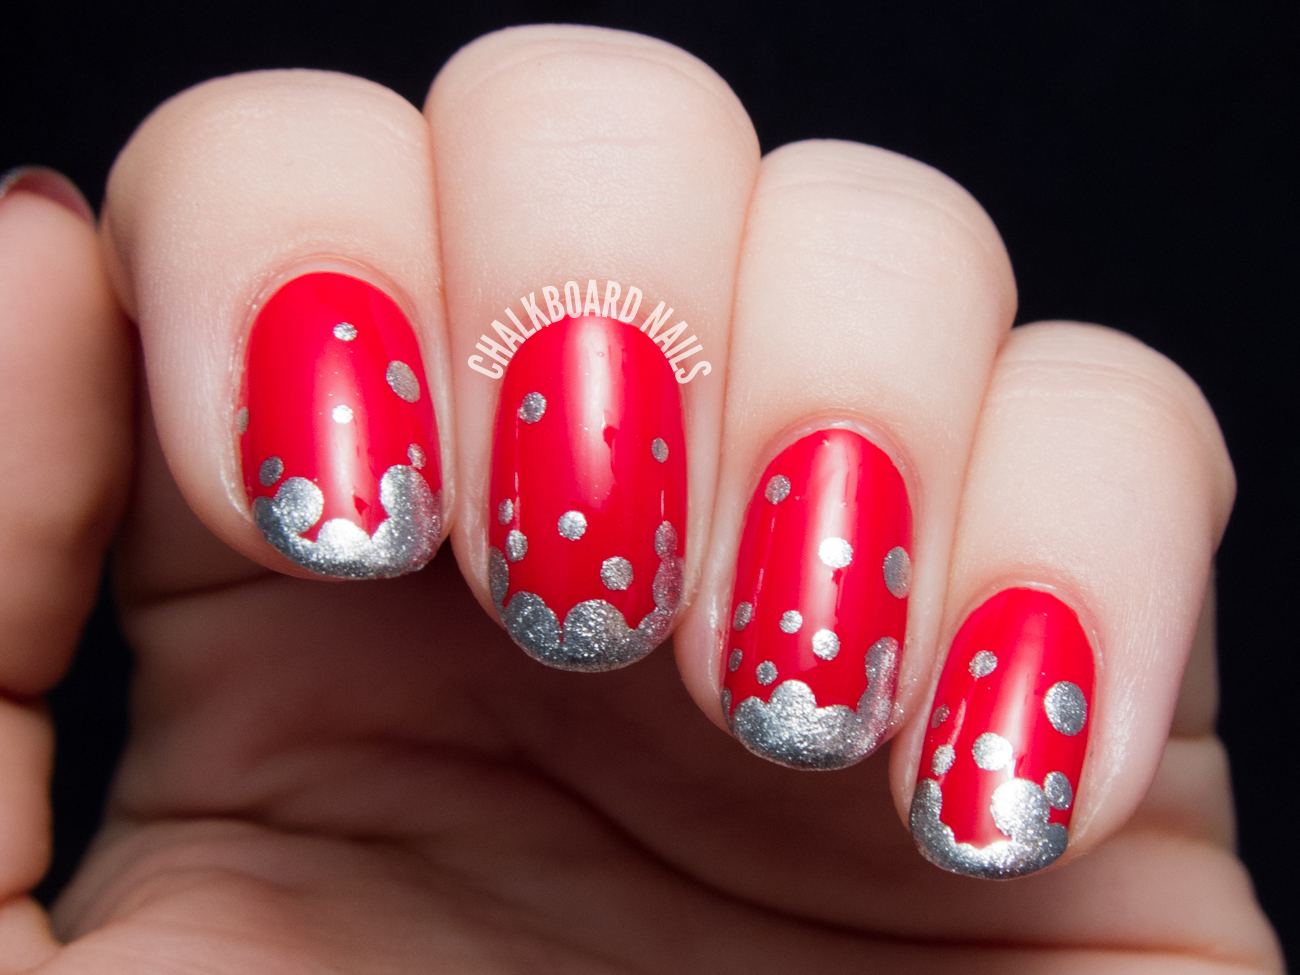 Fizzy French - OPI Coca-Cola Nail Art | Chalkboard Nails ...